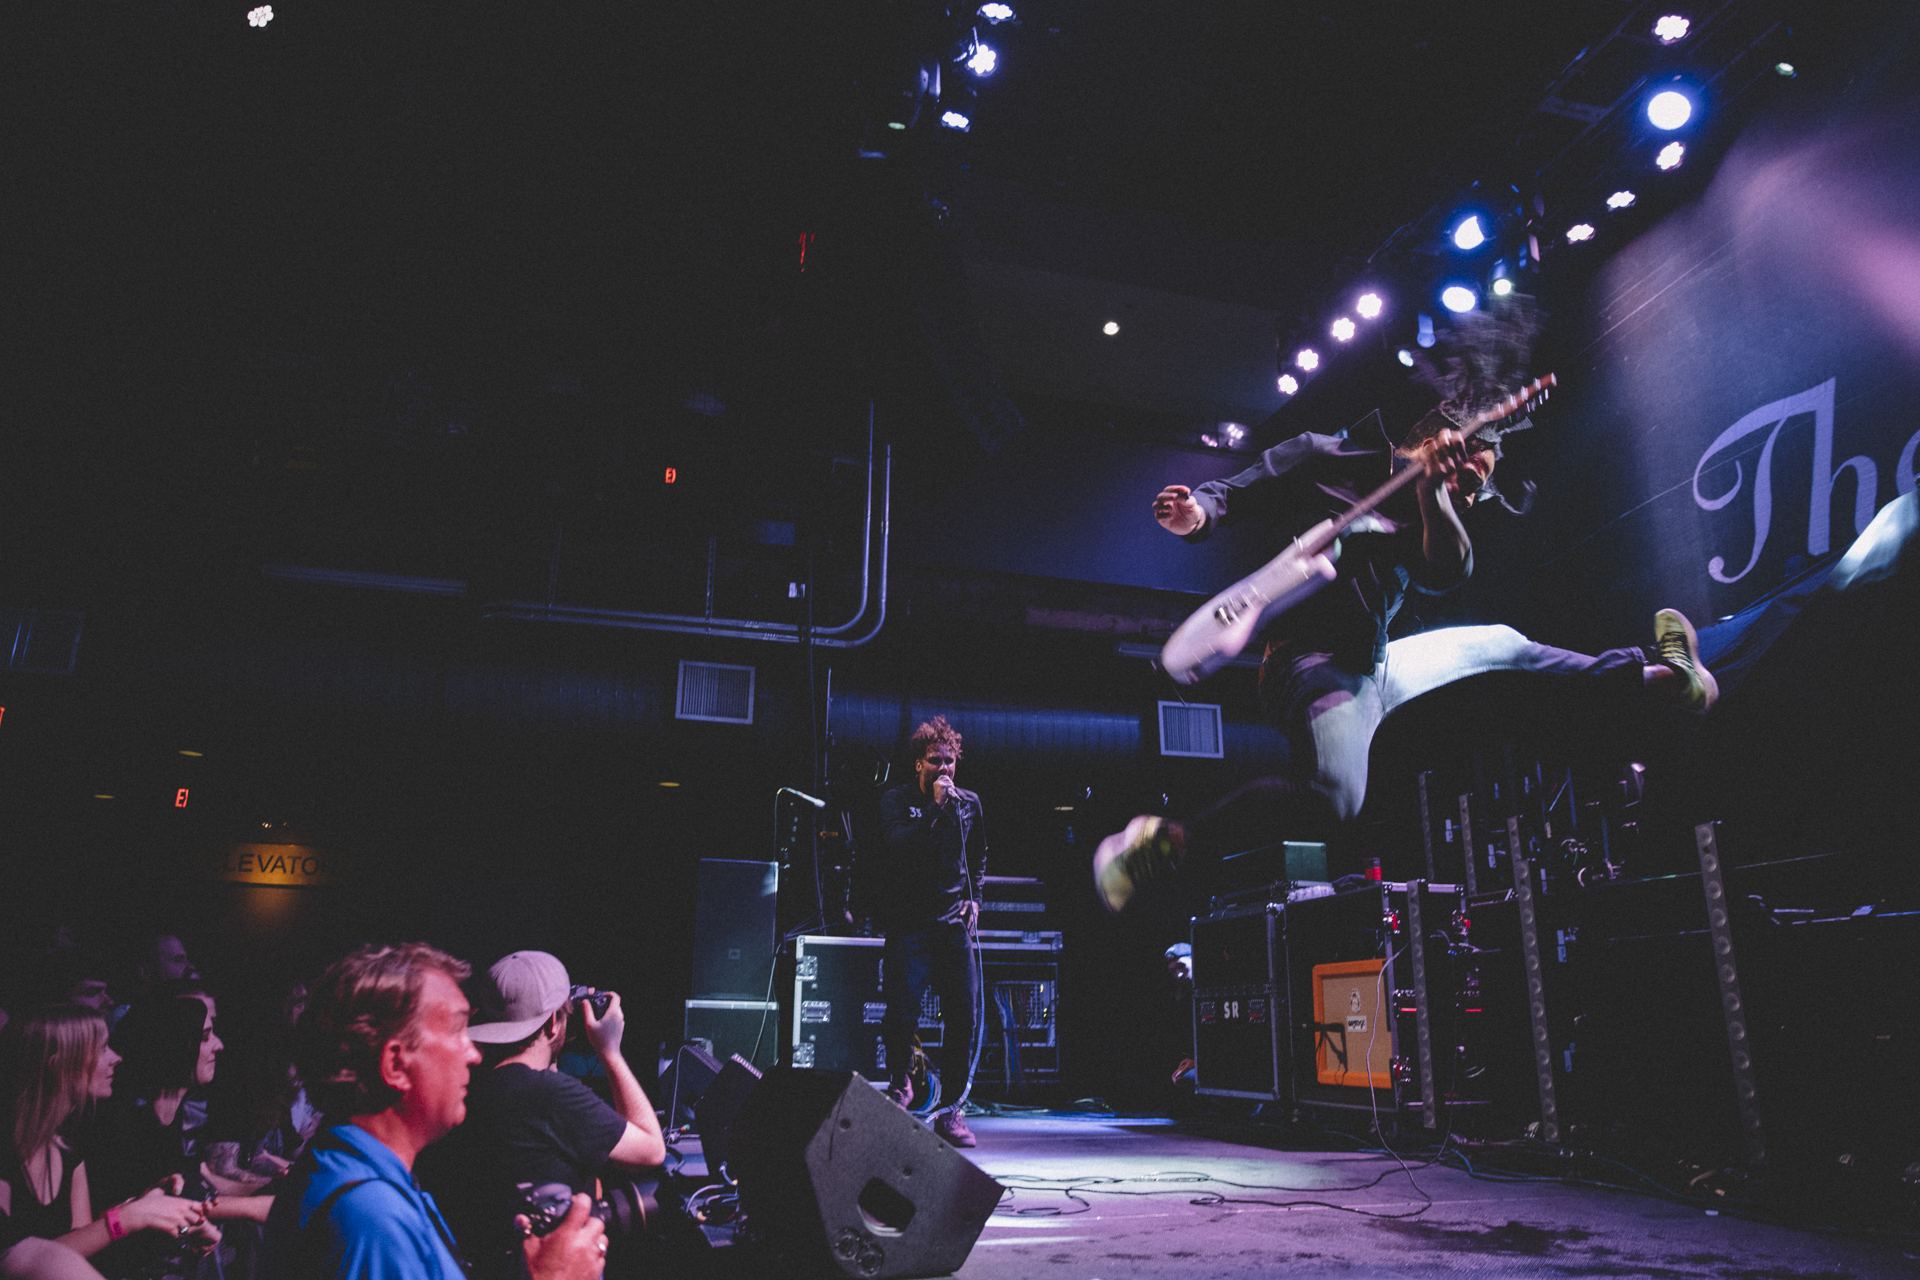 The Fever 333 performing at Mercury Ballroom in Louisville, KY.